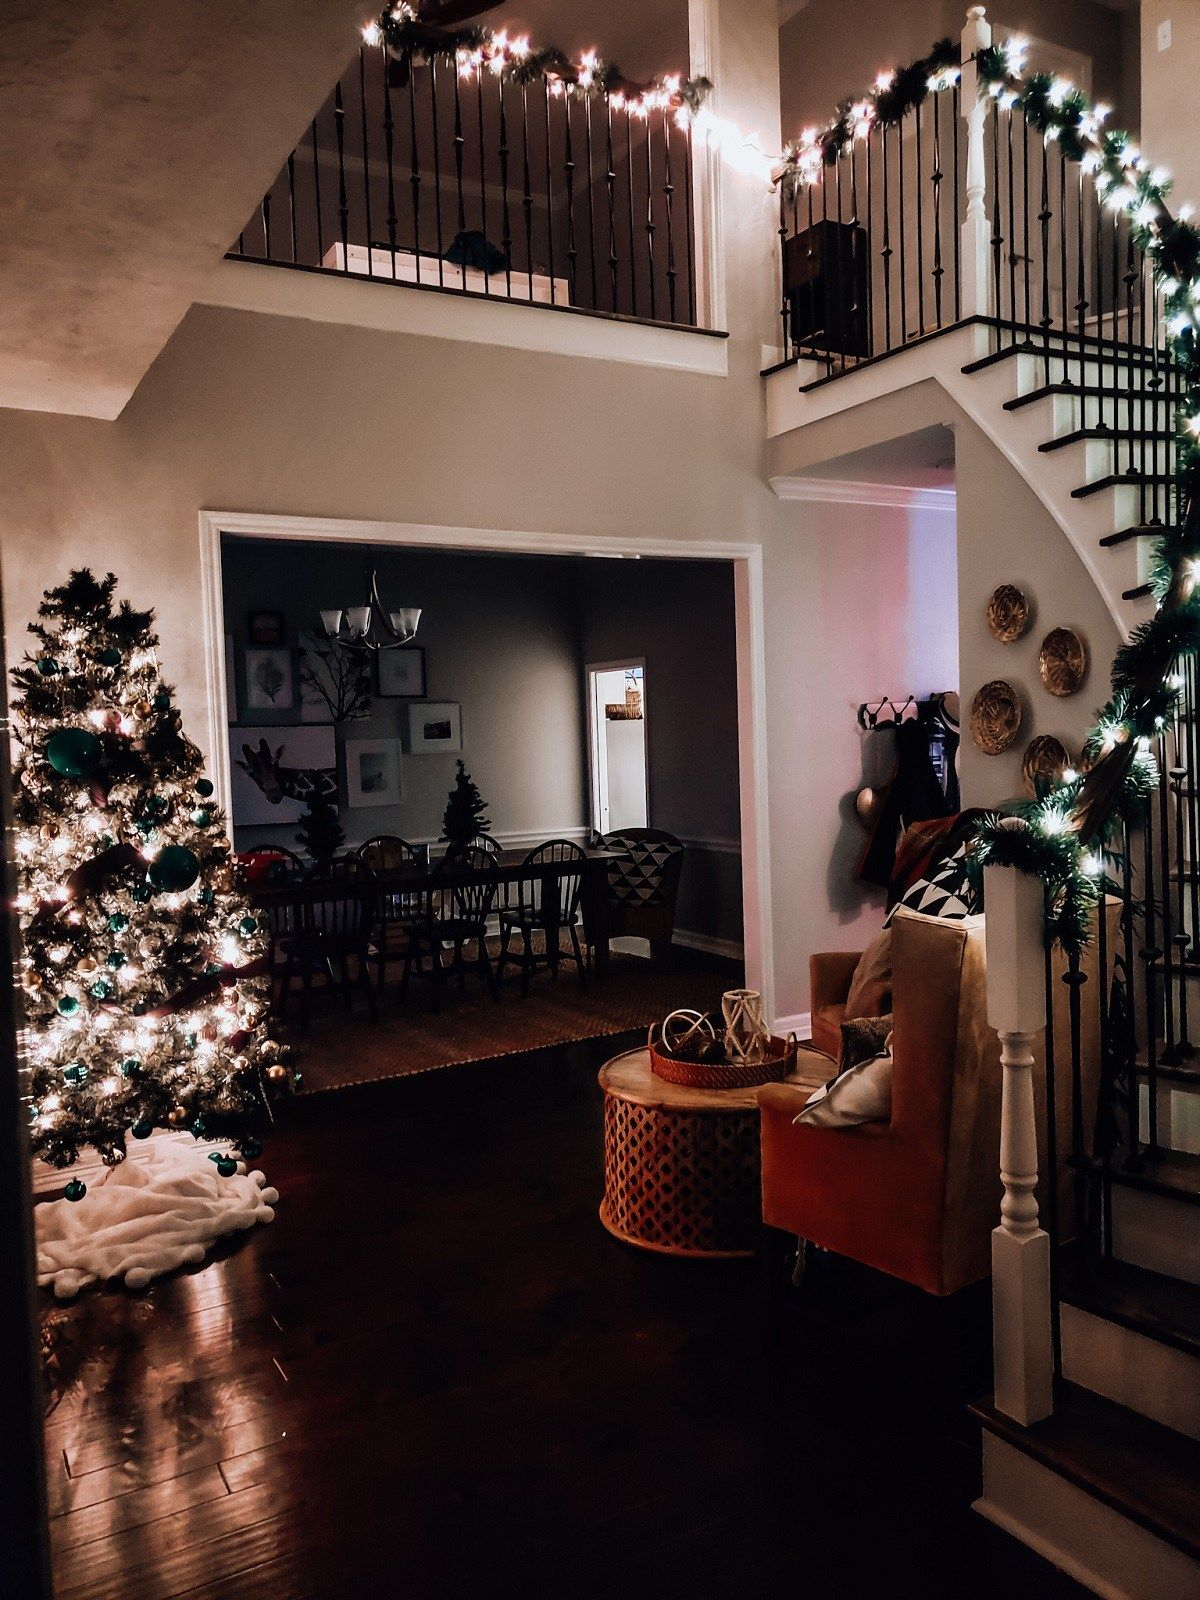 How To Create A Very Hygge Christmas In Your Home Hygge Hygge